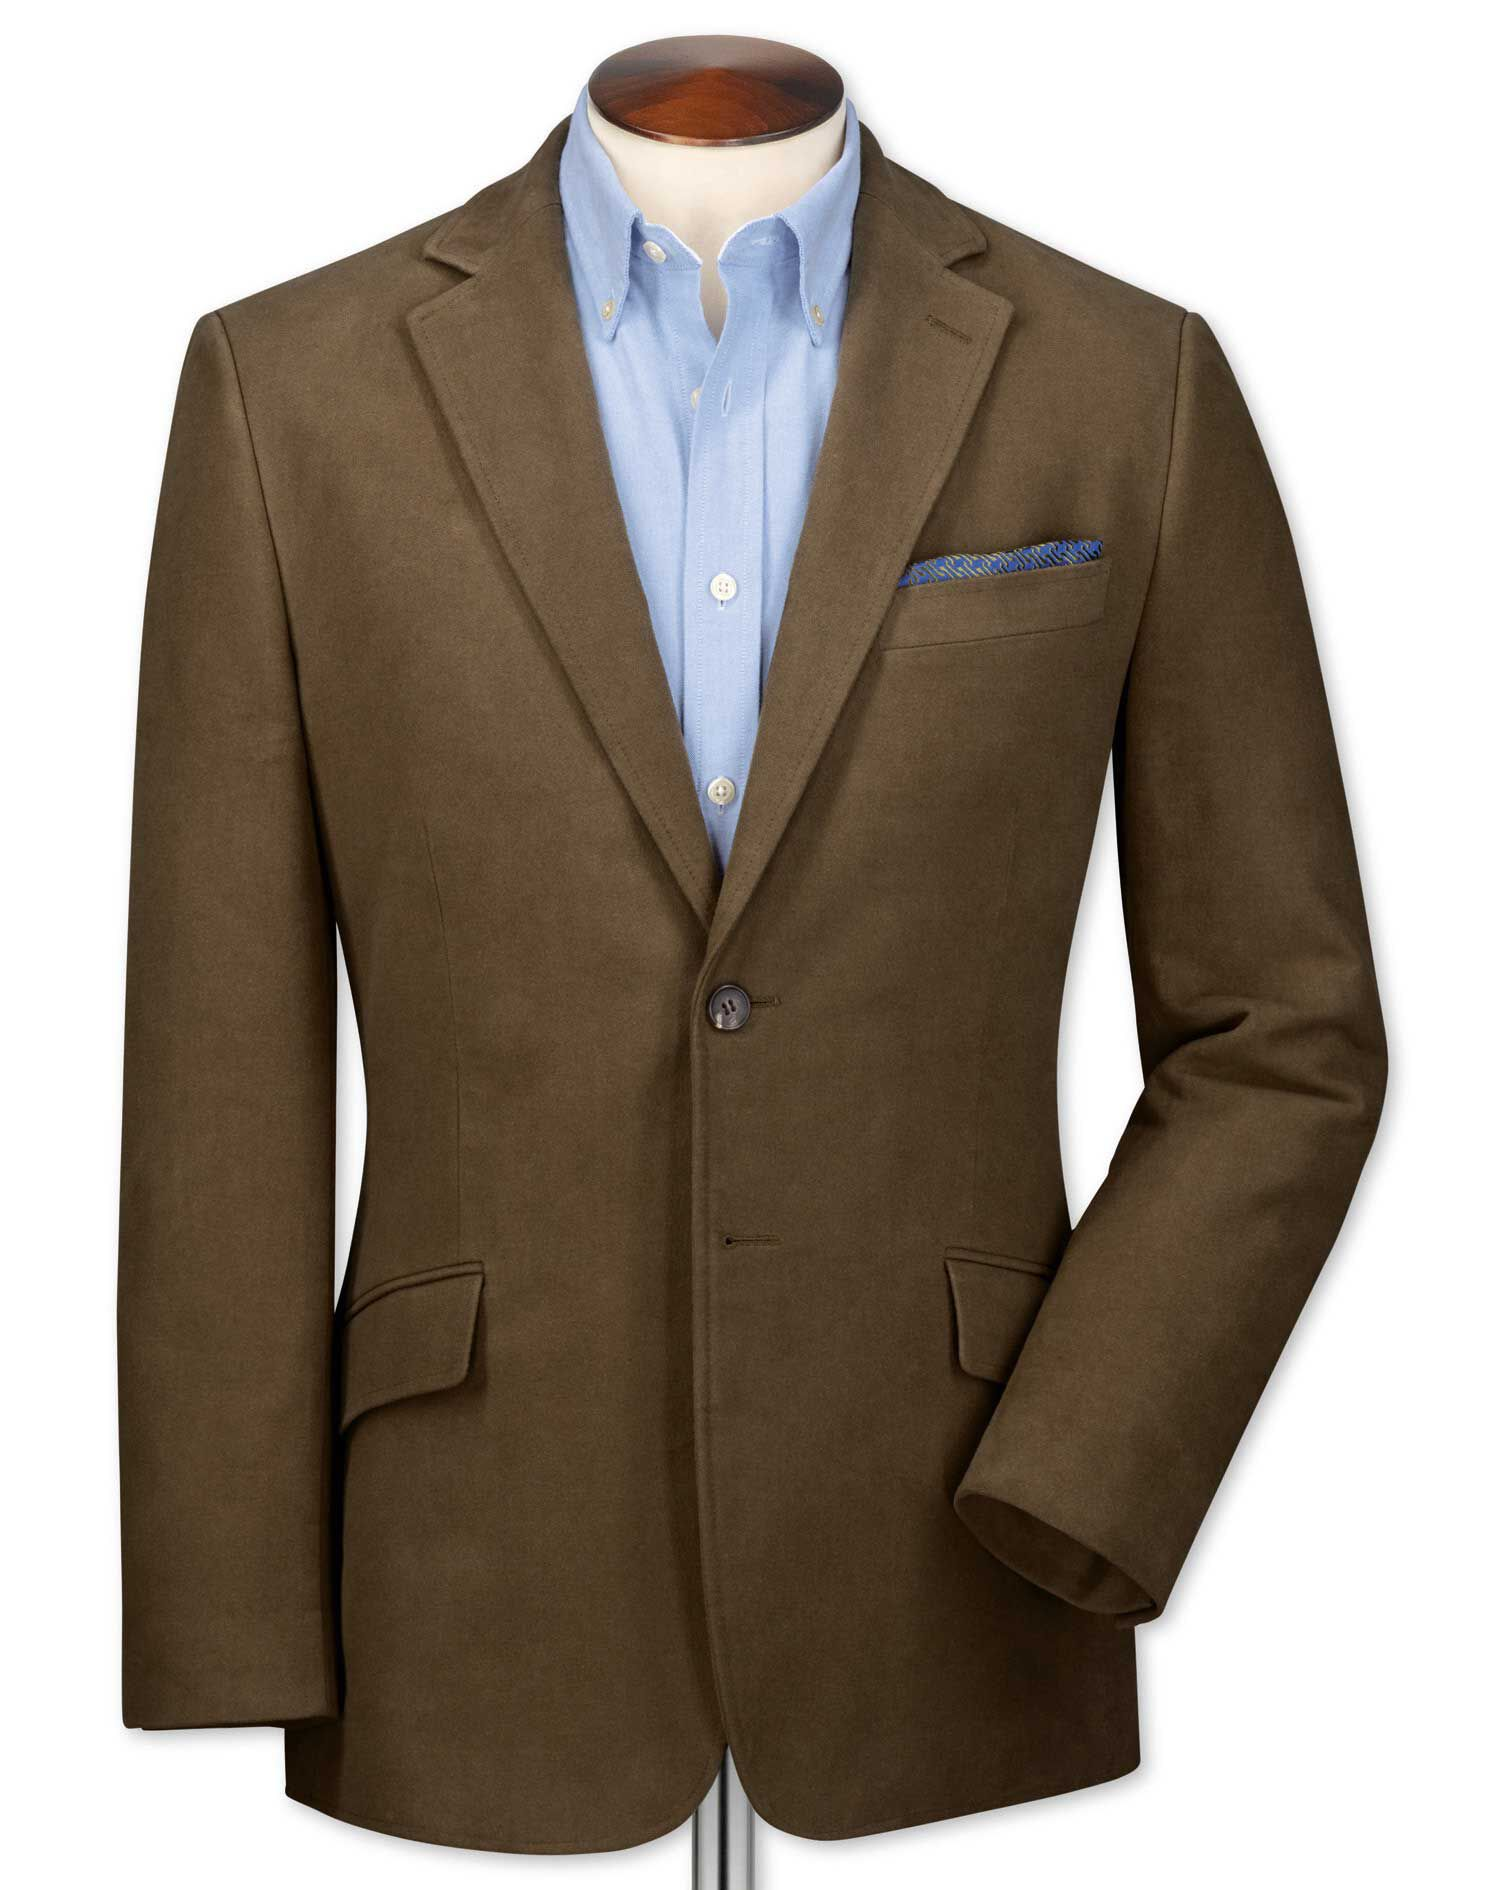 Slim Fit Camel Cotton Flannel Cotton Jacket Size 42 Long by Charles Tyrwhitt